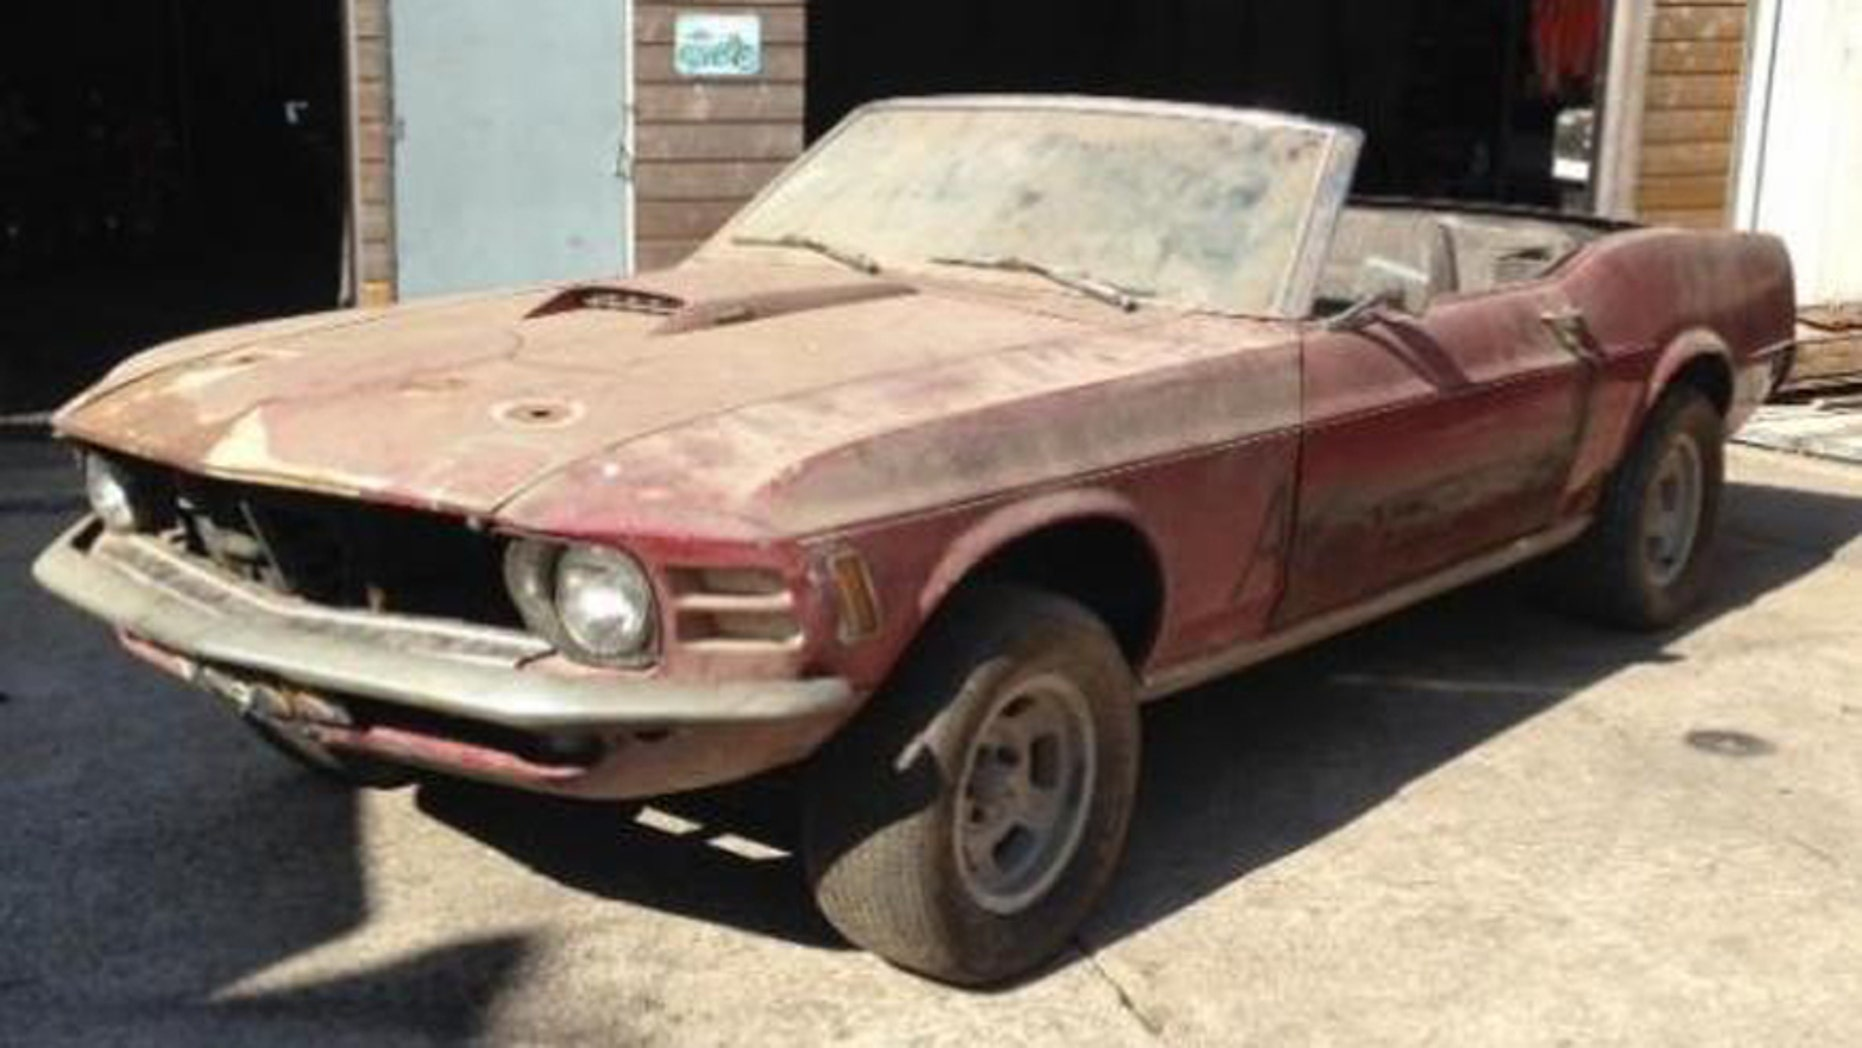 Rare 4x4 ford mustang surfaces in the netherlands fox news